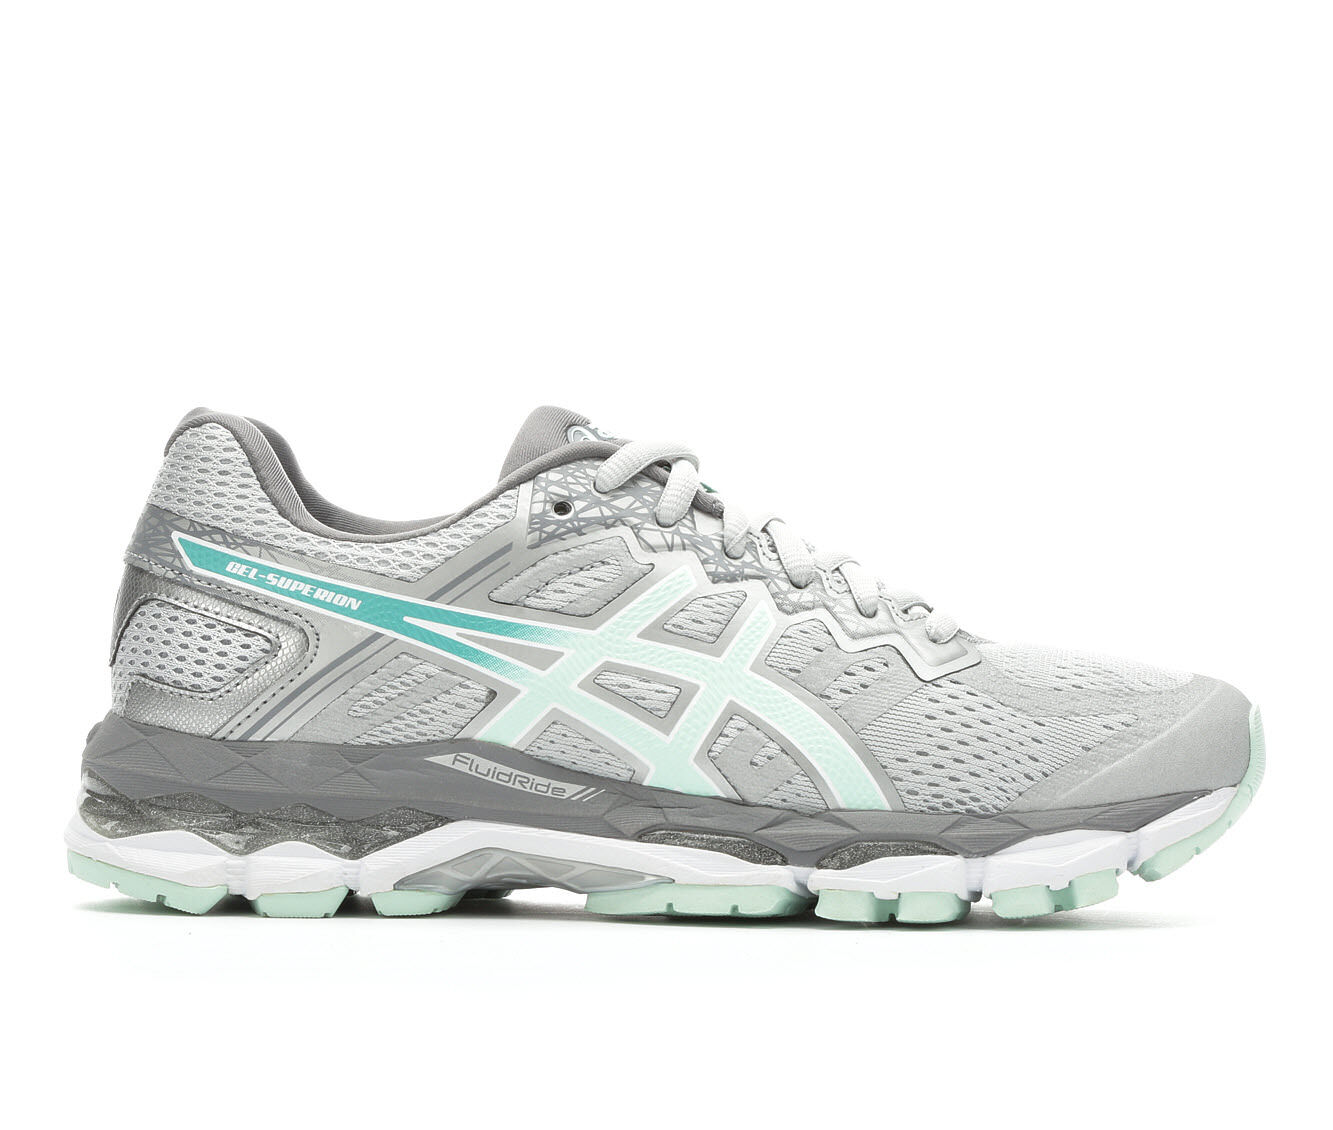 clearance best sale Women's ASICS Gel Superion Running Shoes discount for nice free shipping Inexpensive newest cheap price discount footlocker finishline poSQUeiz